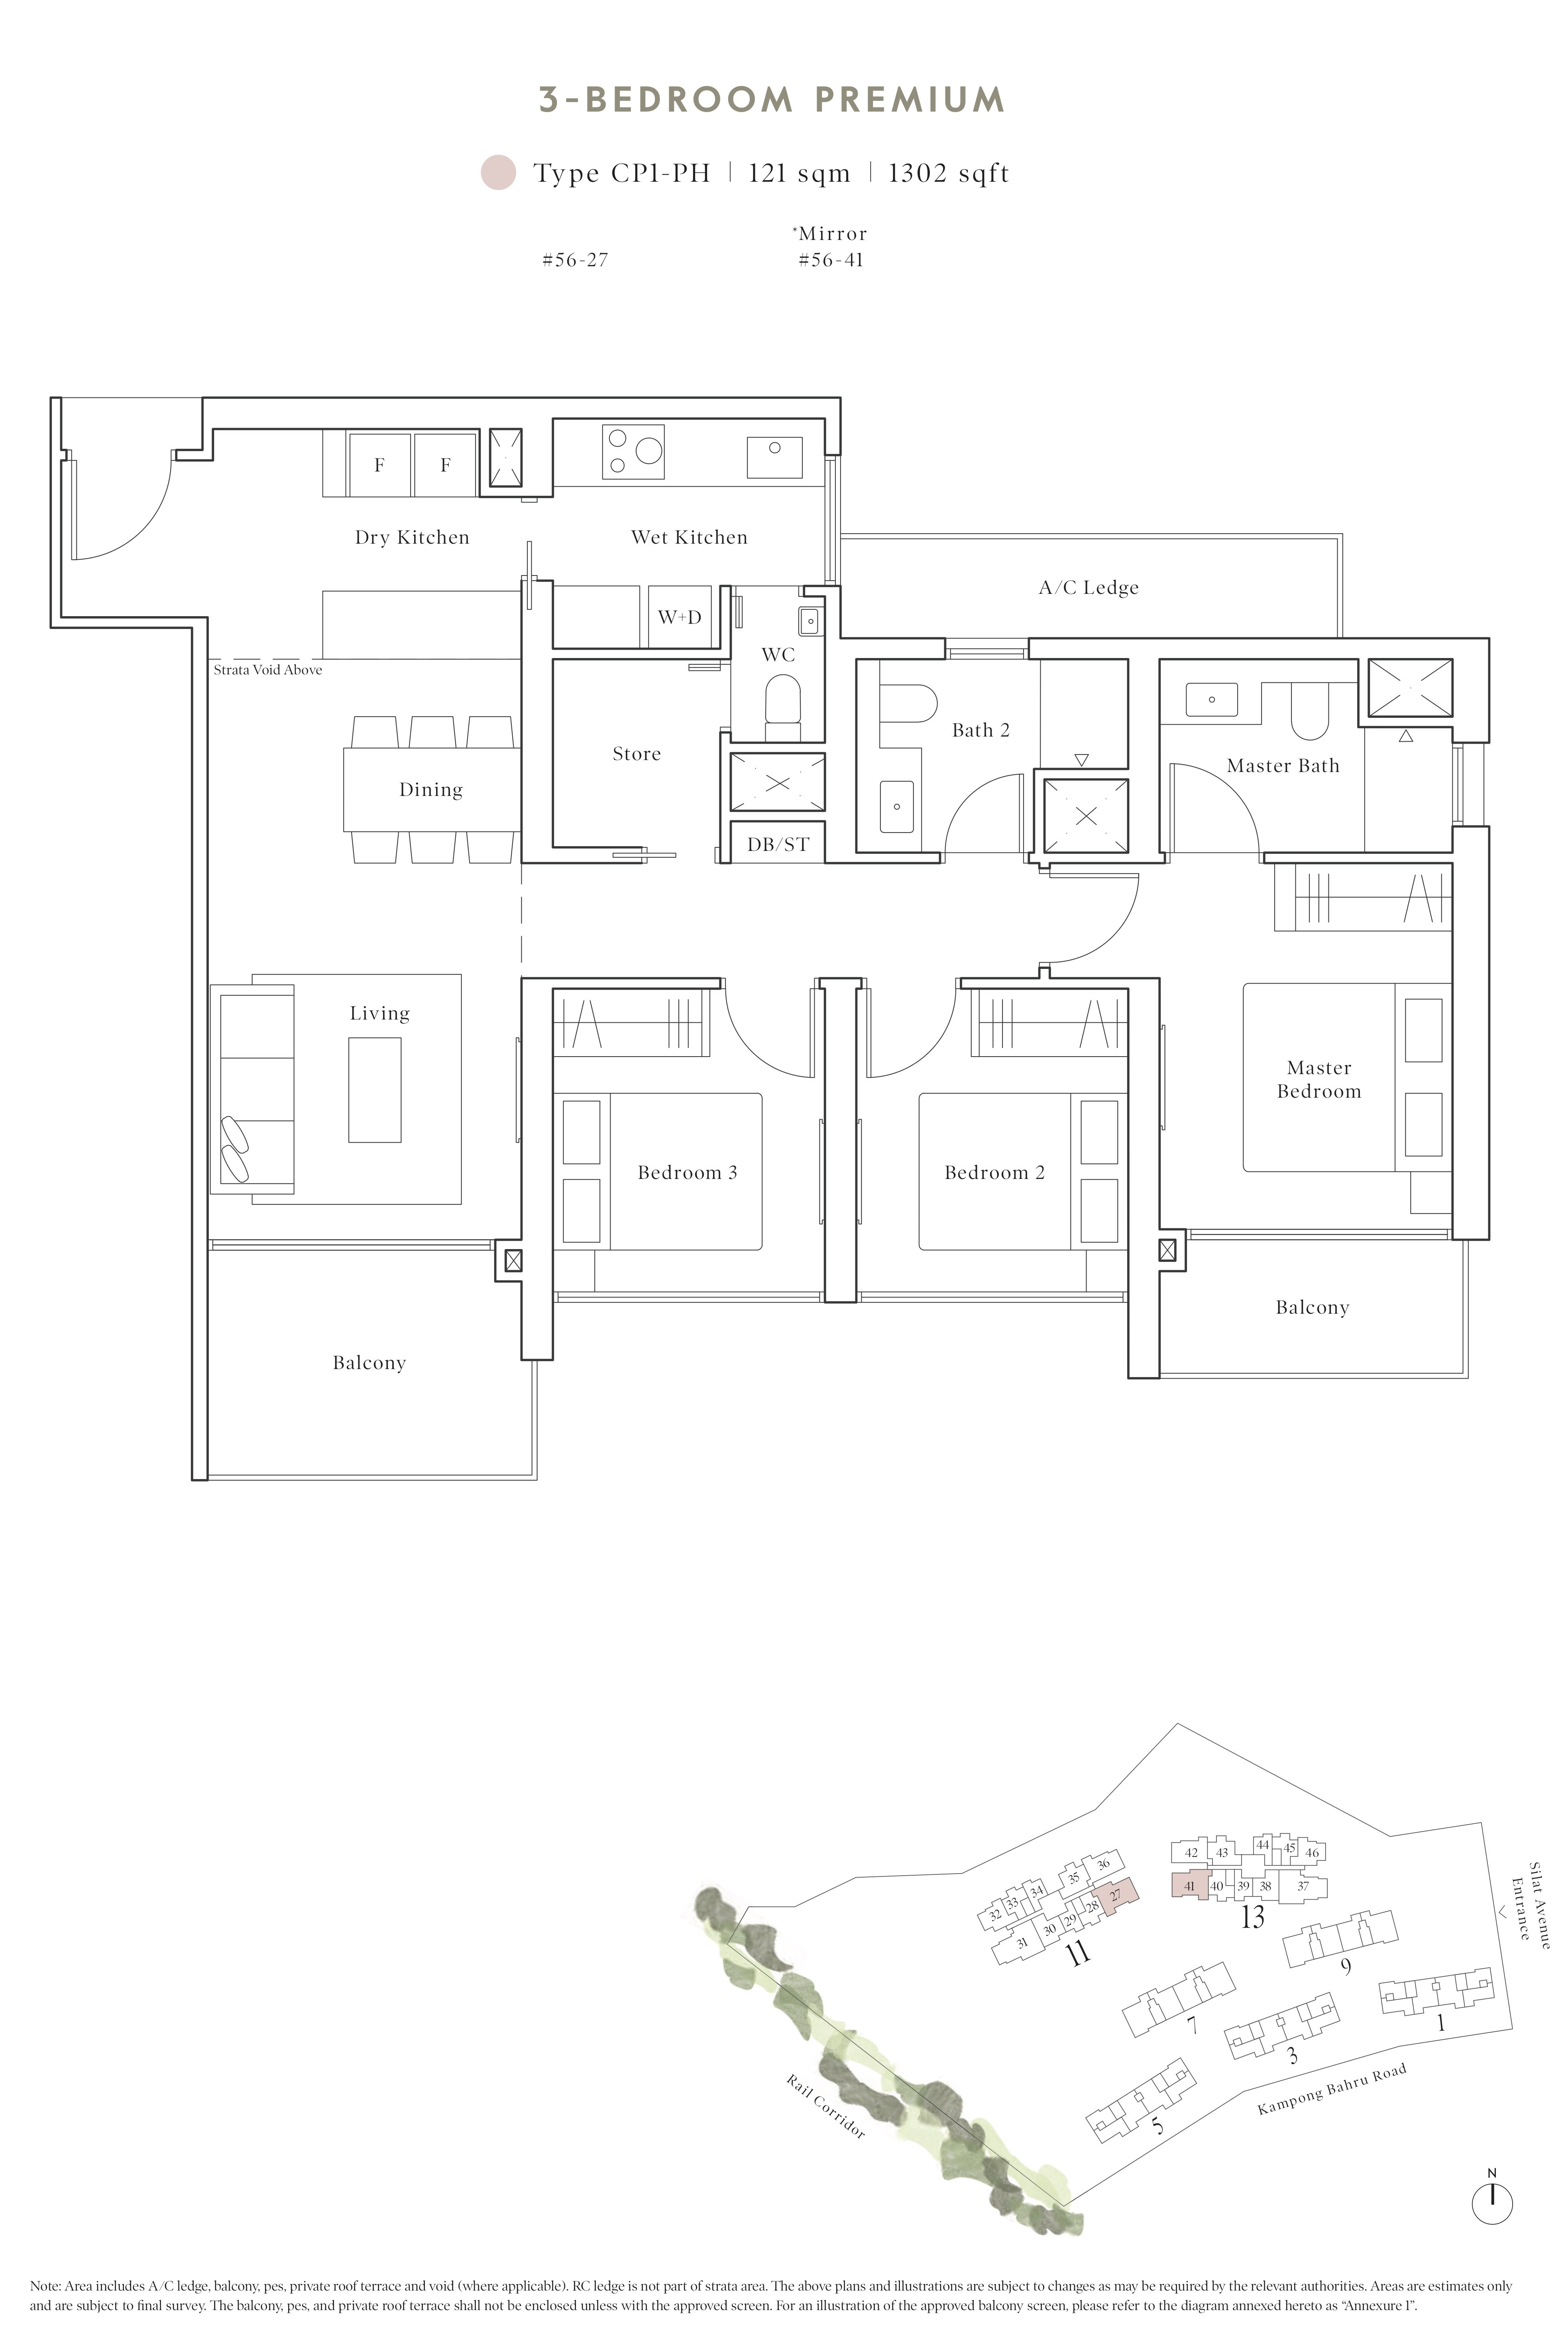 Avenue South Residence 南峰雅苑 peak floor plan 3-bedroom penthouse cp1-ph